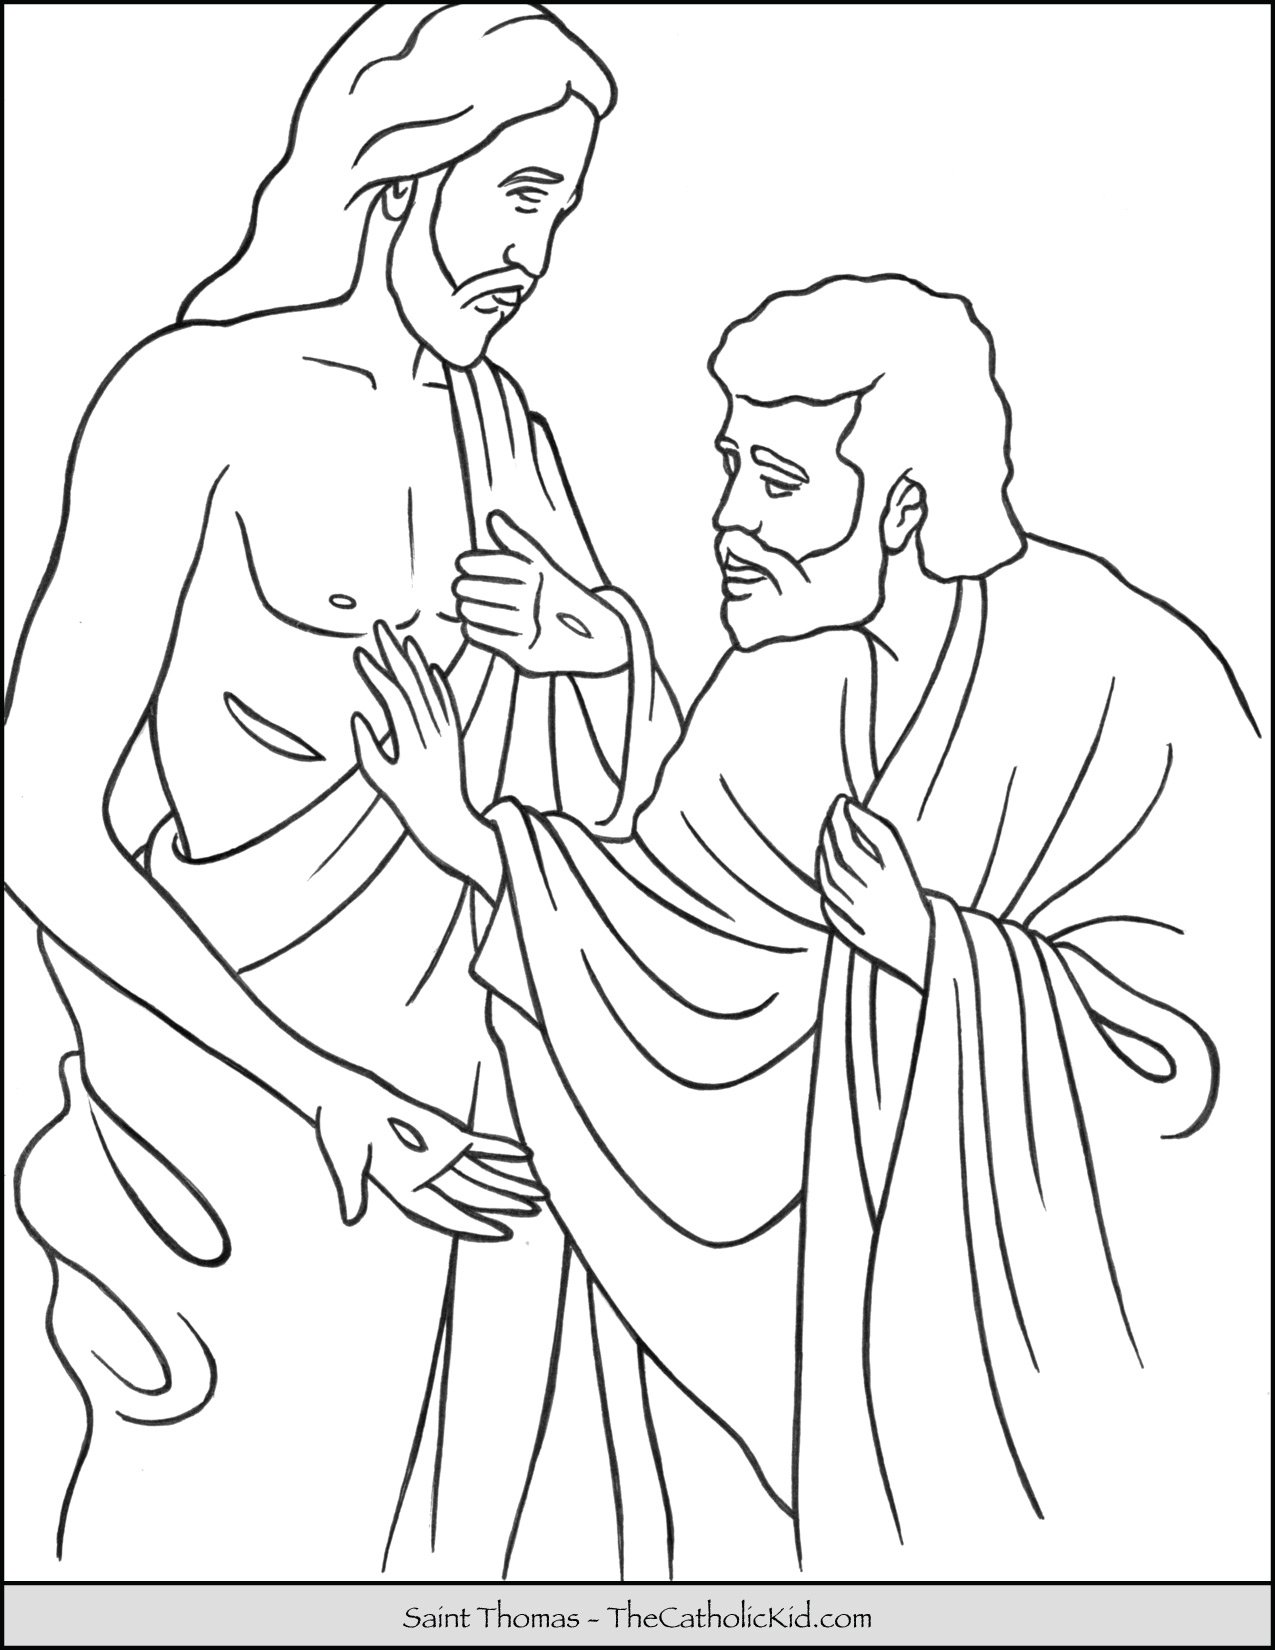 Saint Thomas Coloring Page